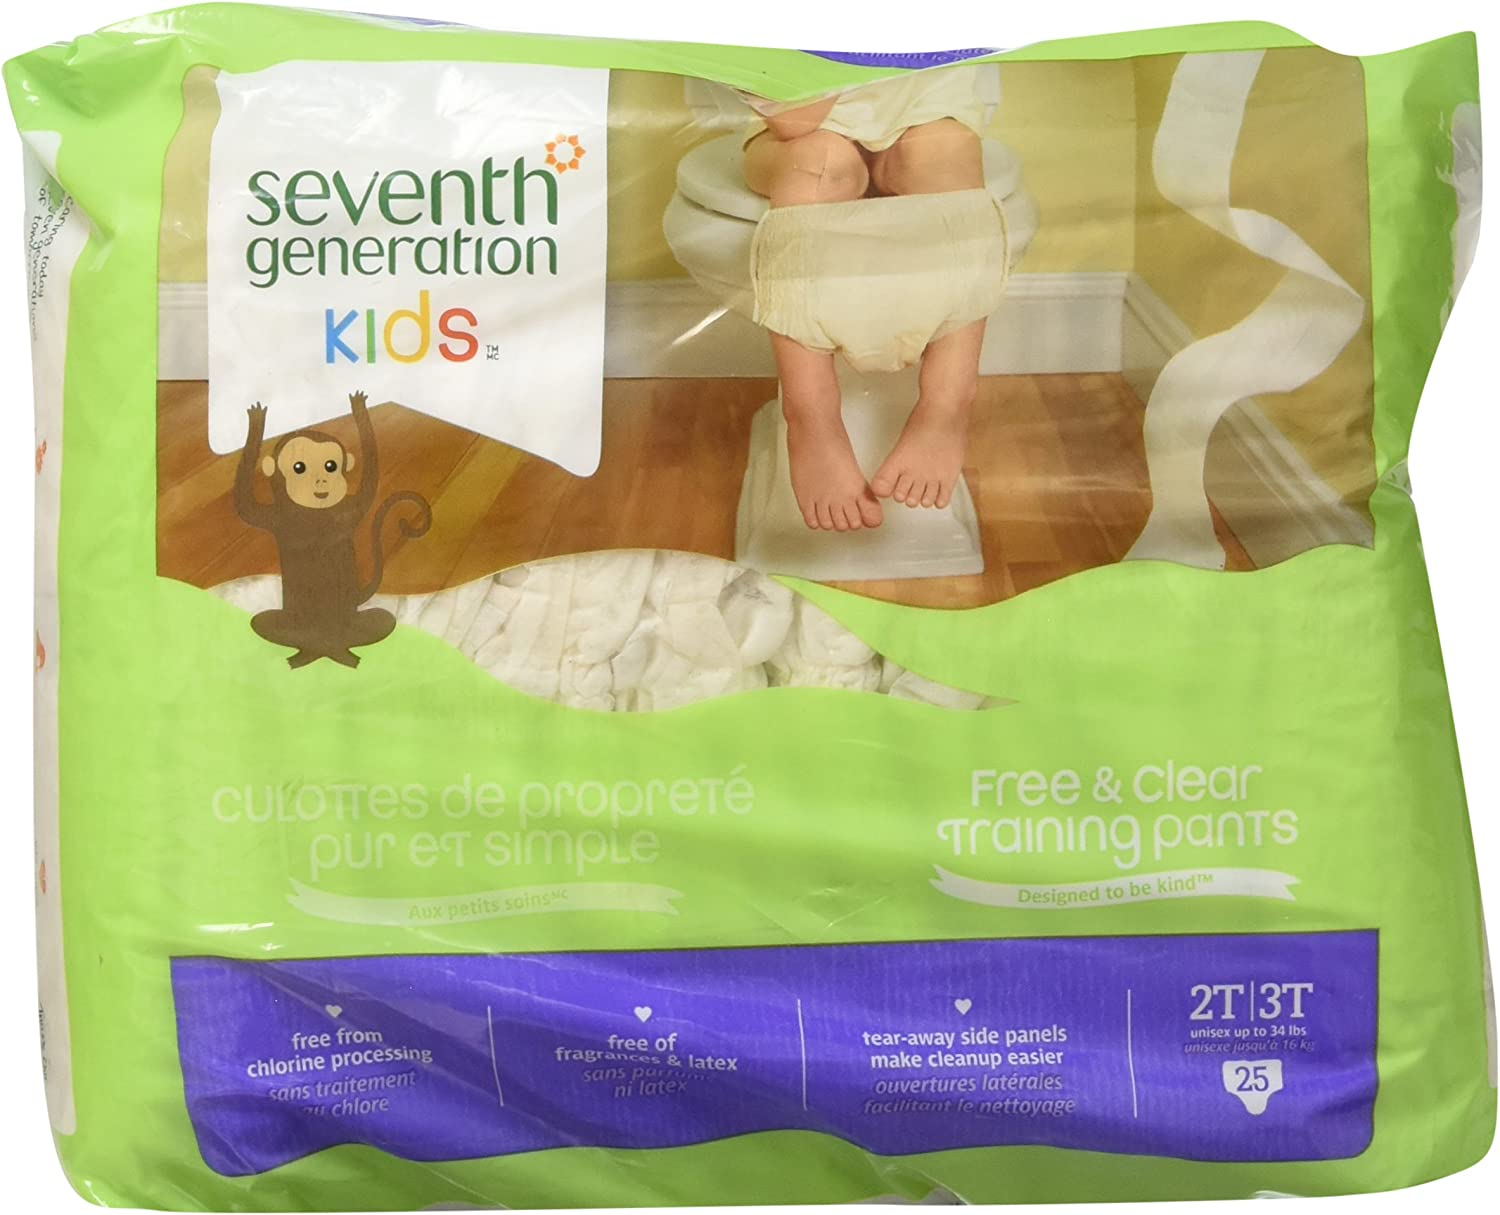 Packaging may vary Seventh Generation Free and Clear 27ct Size 4 Unbleached Baby Diapers